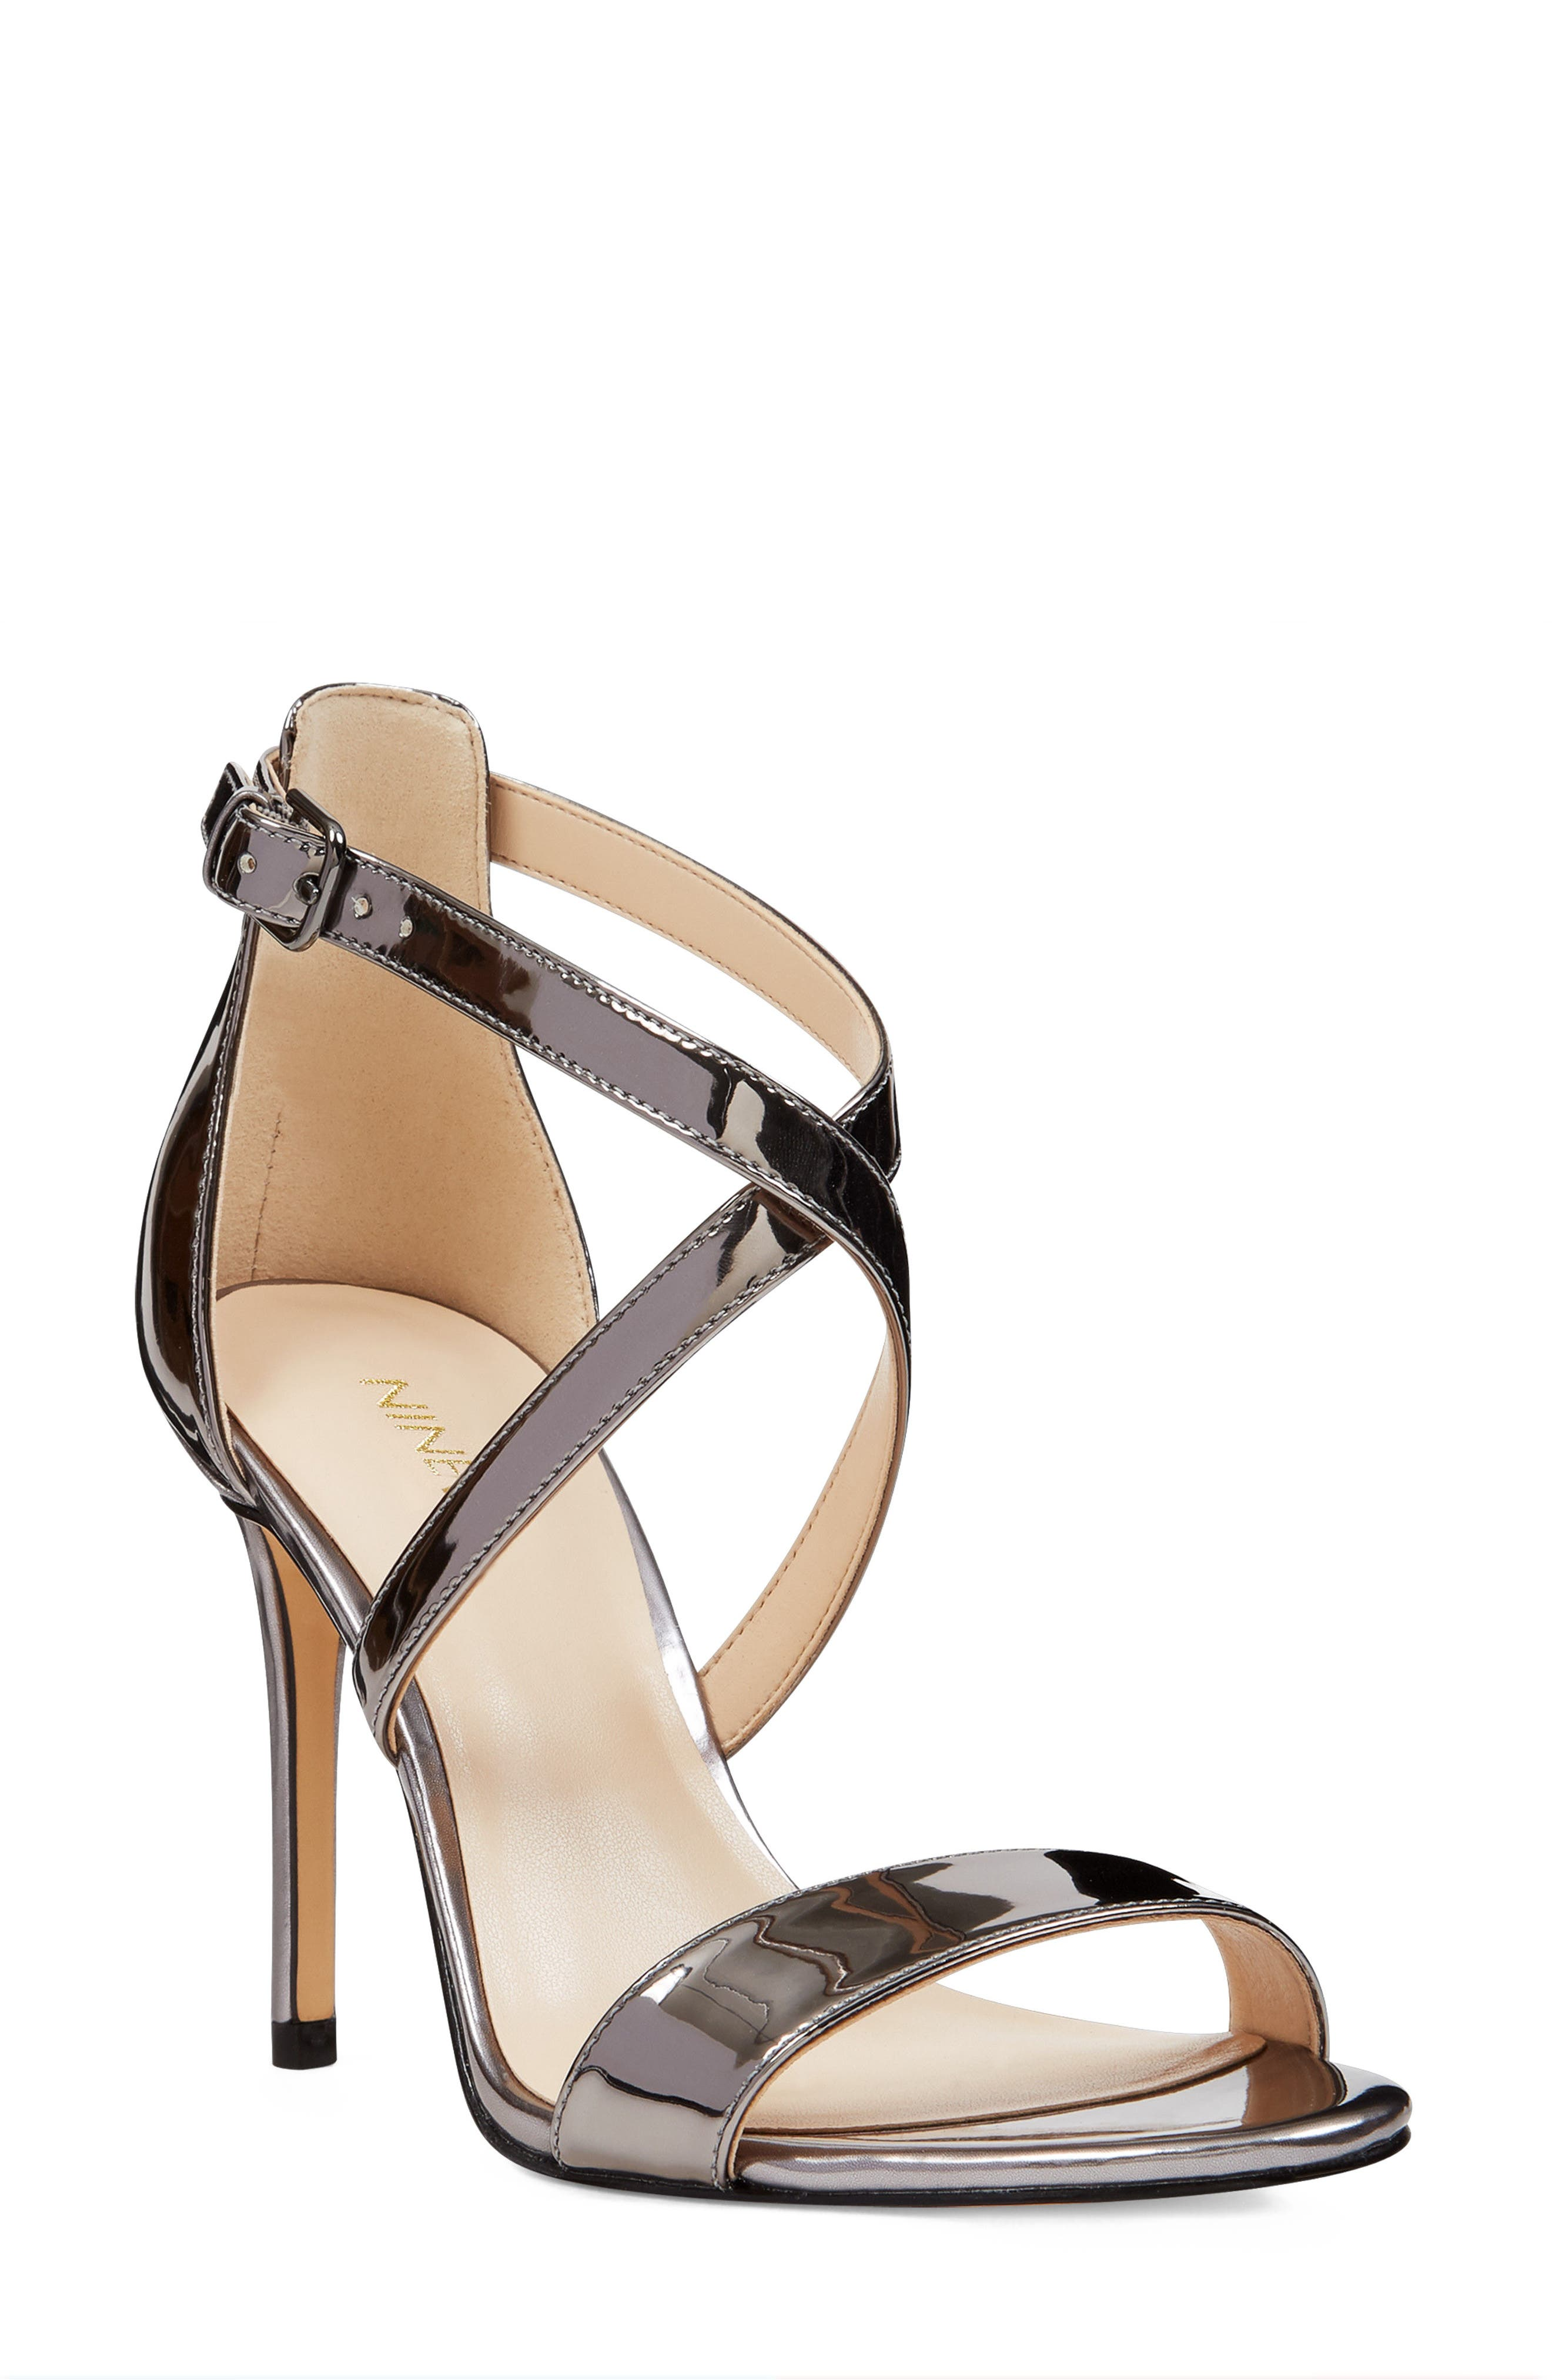 NINE WEST,                             Mydebut Cross Strap Sandal,                             Main thumbnail 1, color,                             040